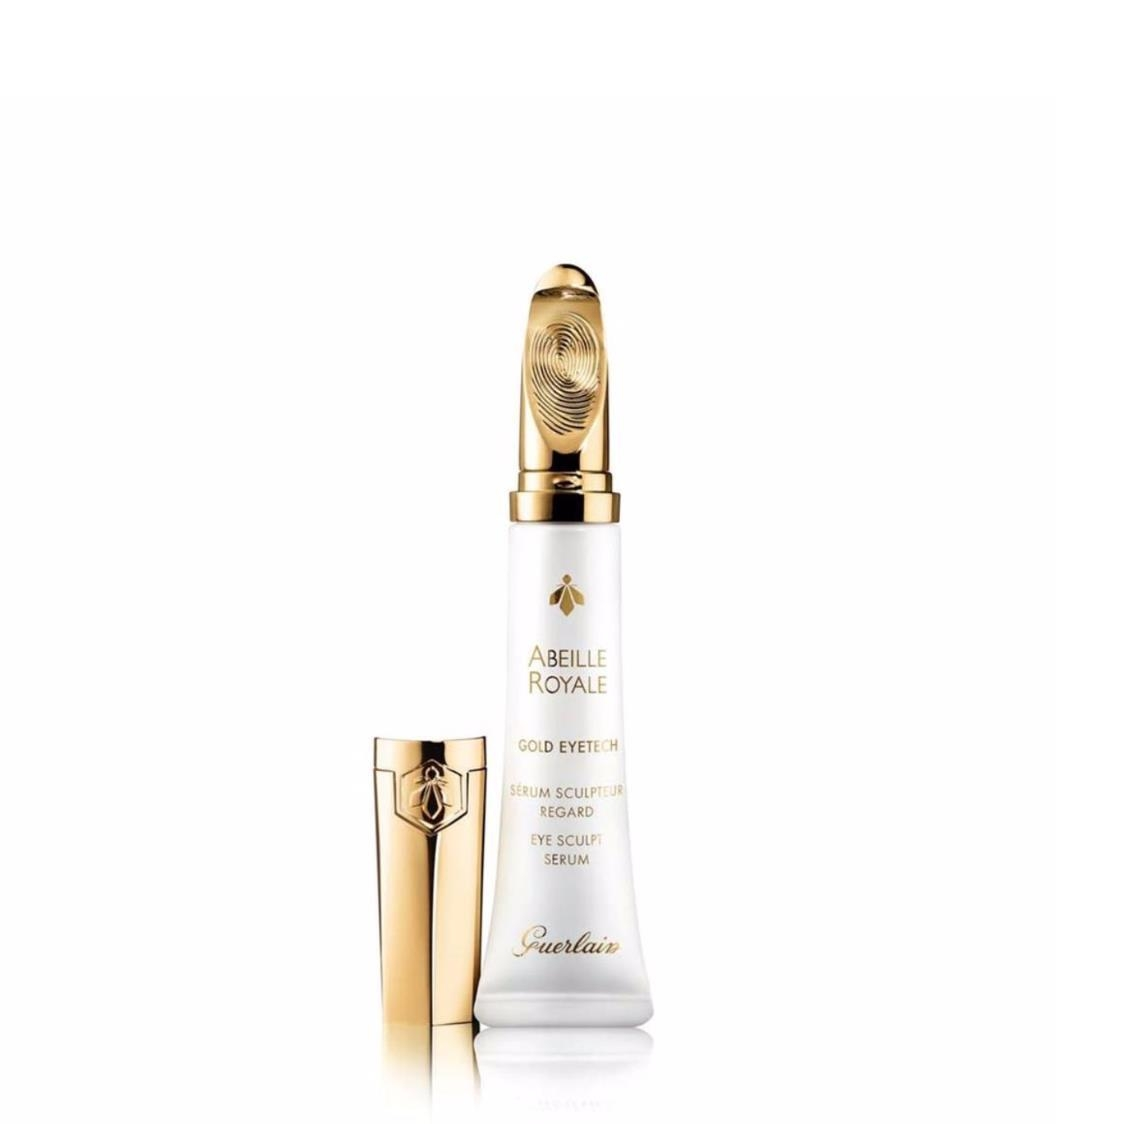 Abeille Royale Gold Eyetech Eye Sculpt Serum 15ml